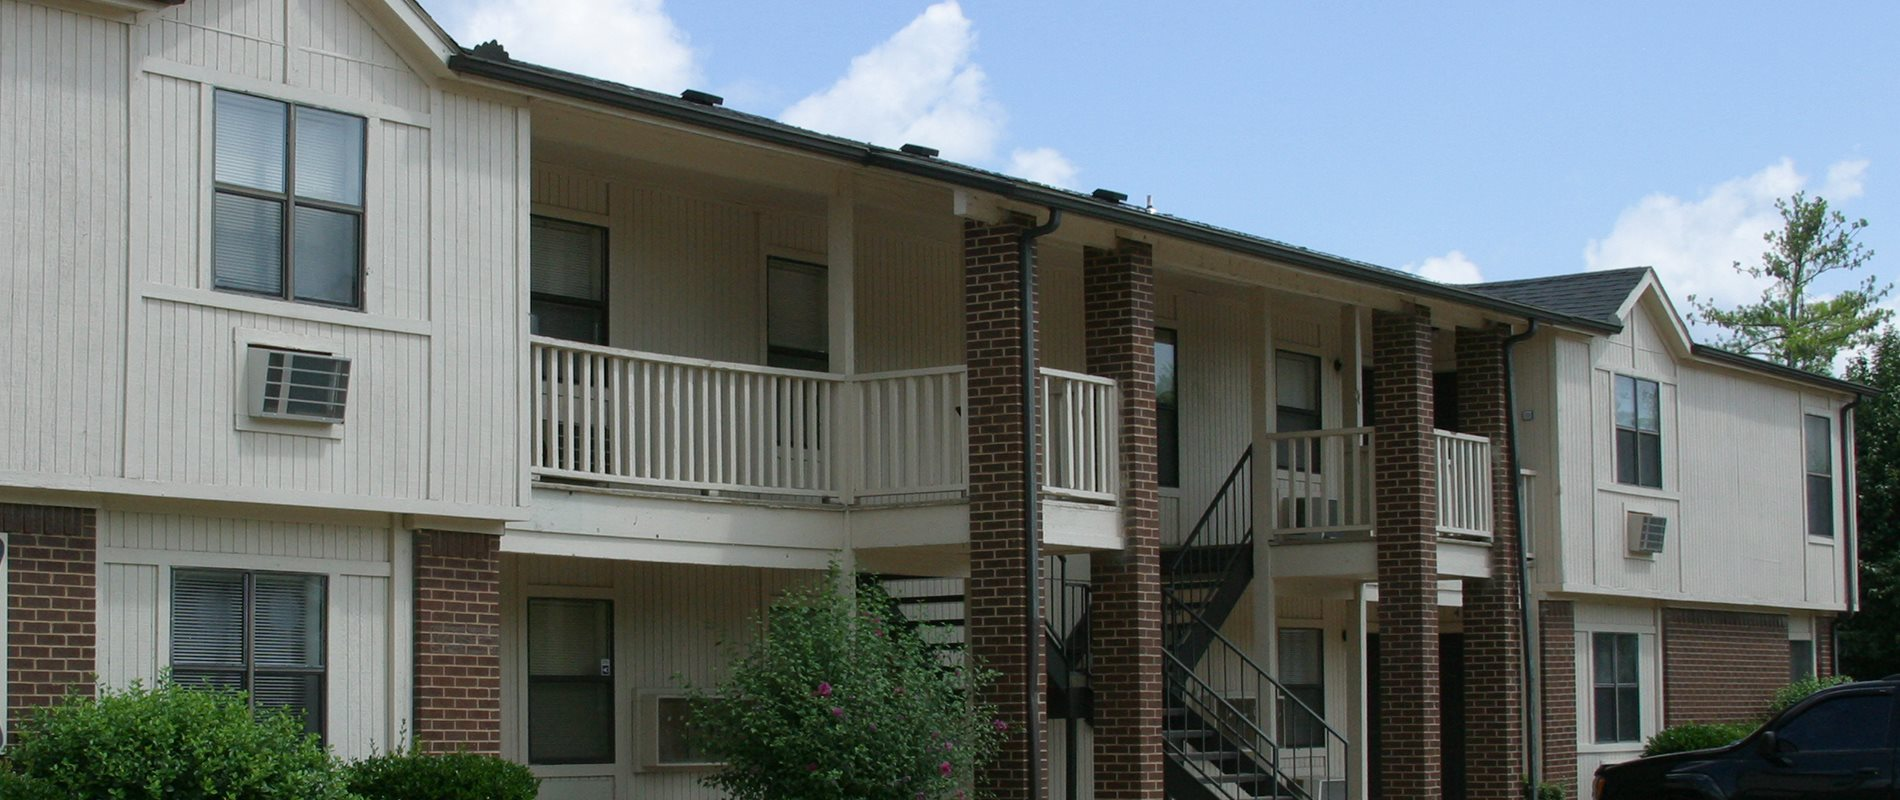 East Oaks Apartments In Fayetteville Ar